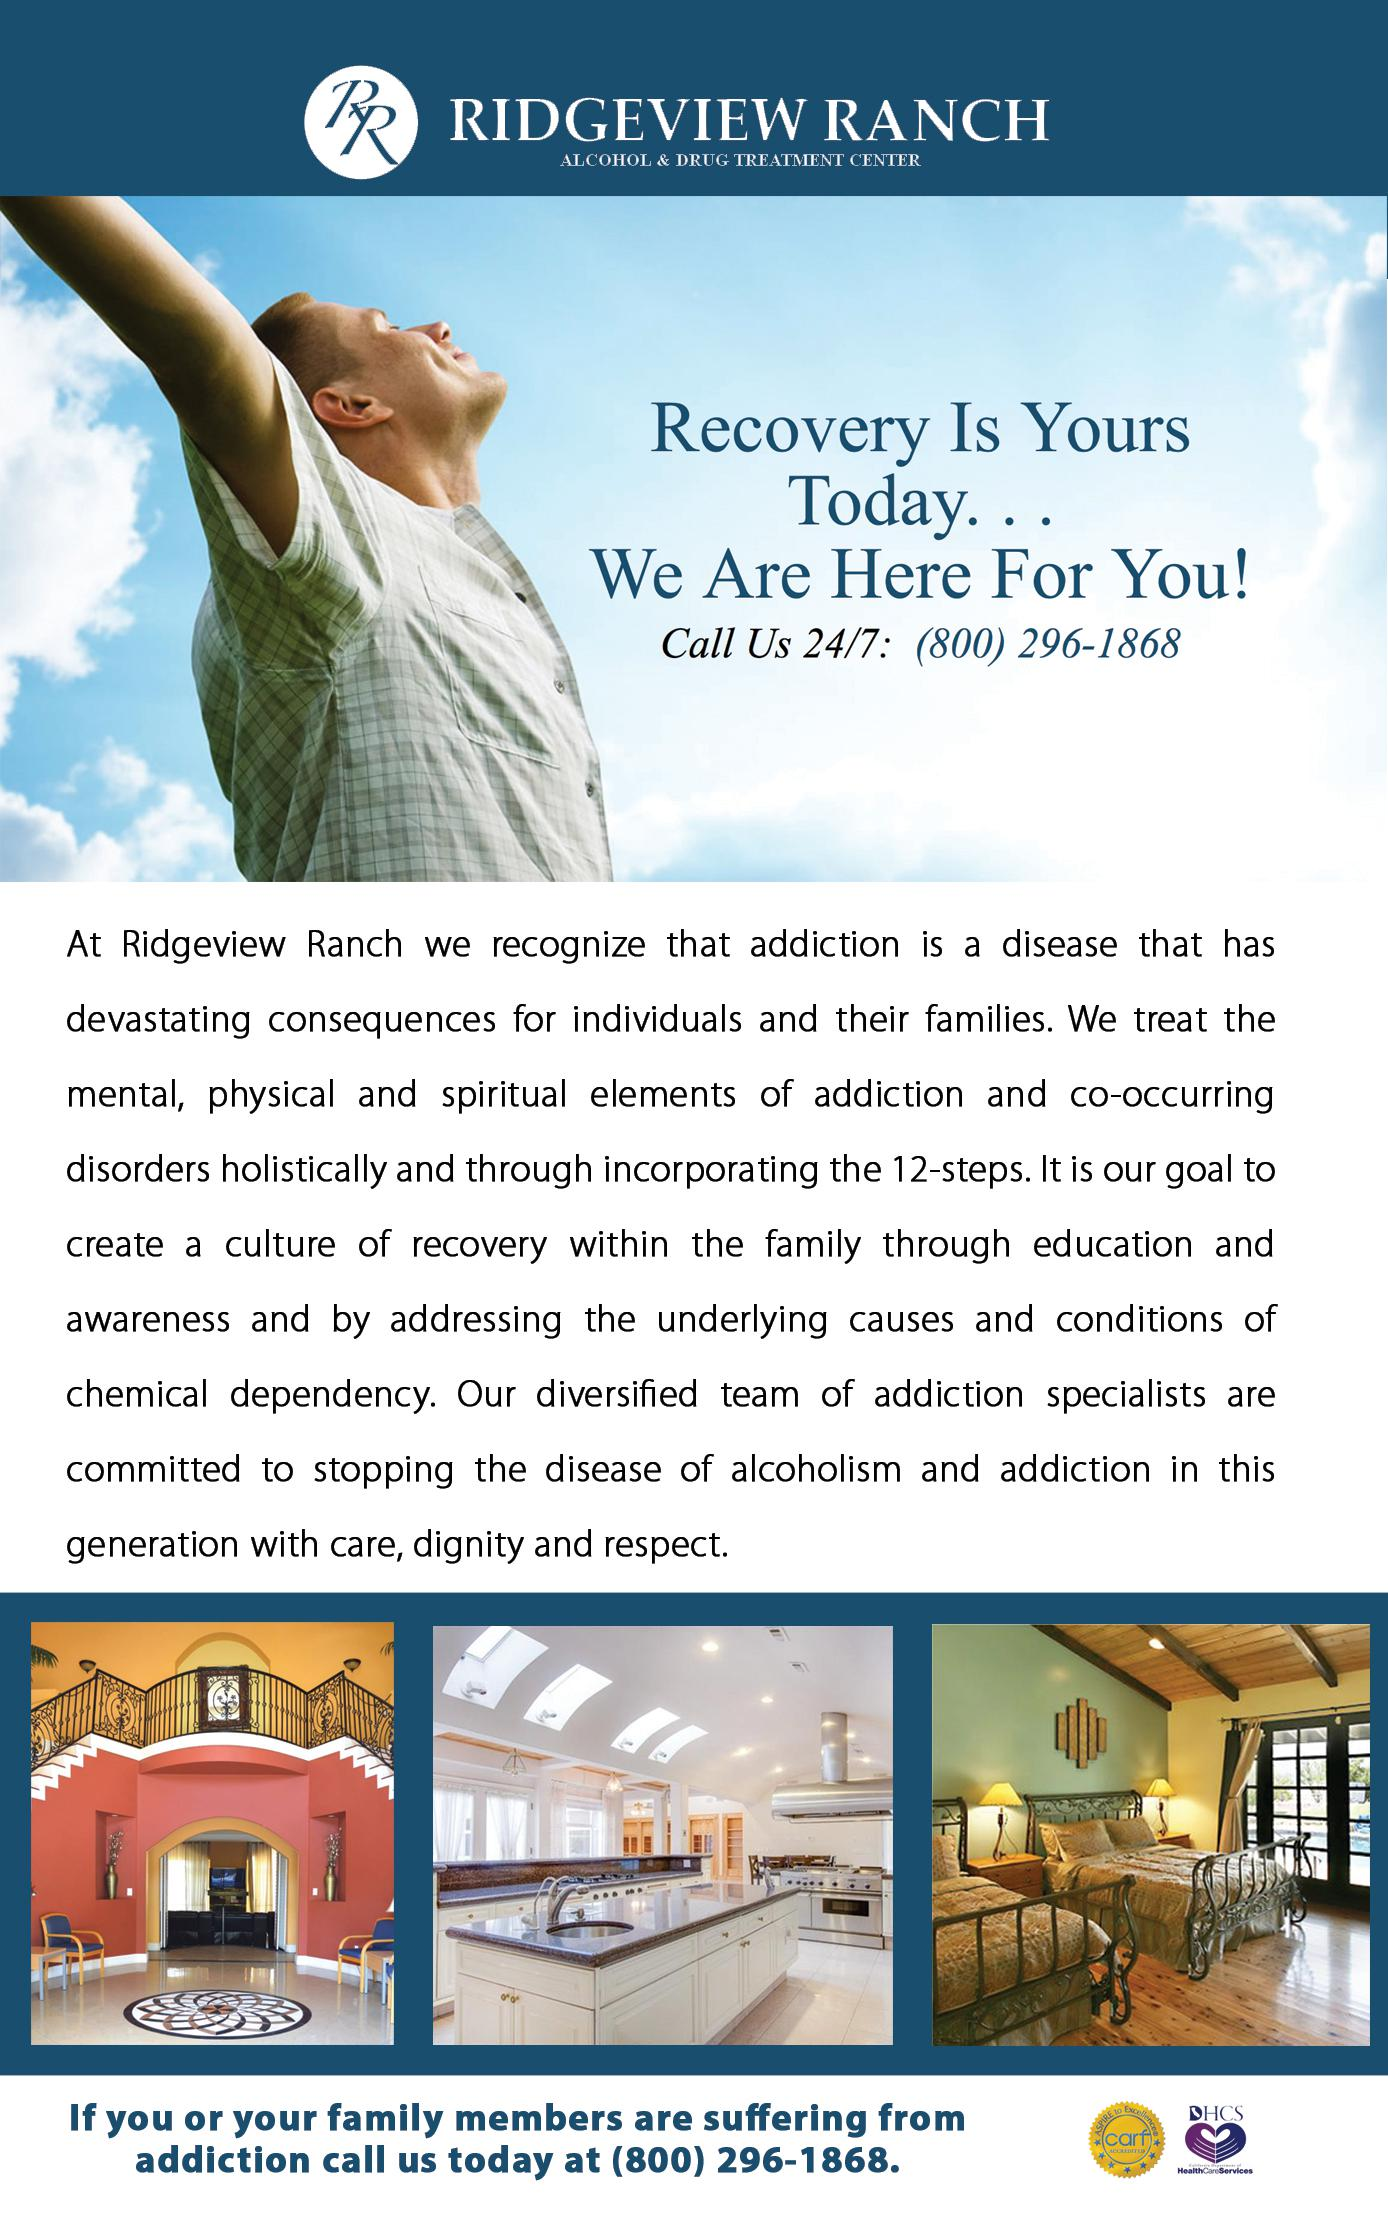 Ridgeview Ranch Drug & Alcohol Treatment for Men and Women